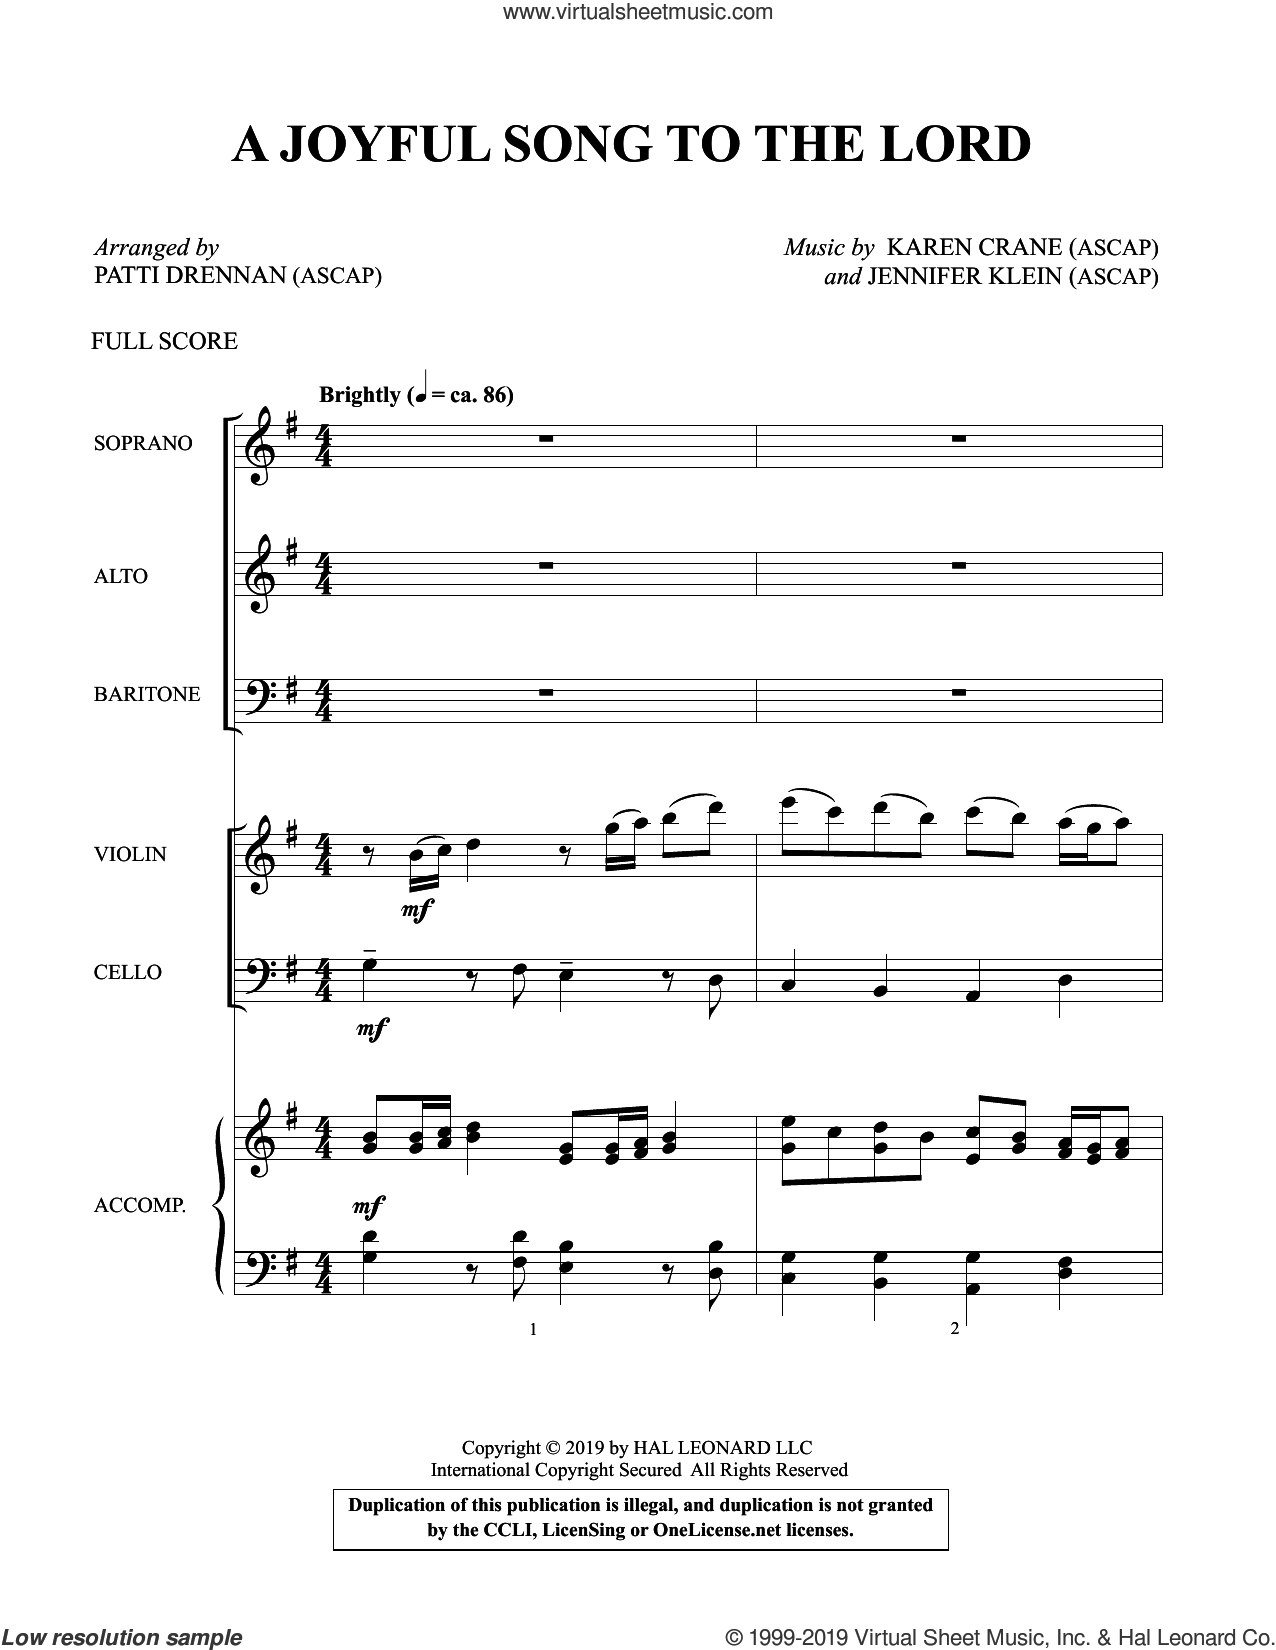 A Joyful Song to the Lord (arr. Patti Drennan) (COMPLETE) sheet music for orchestra/band by Karen Crane & Jennifer Klein, Jennifer Klein, Karen Crane and Patti Drennan, intermediate skill level